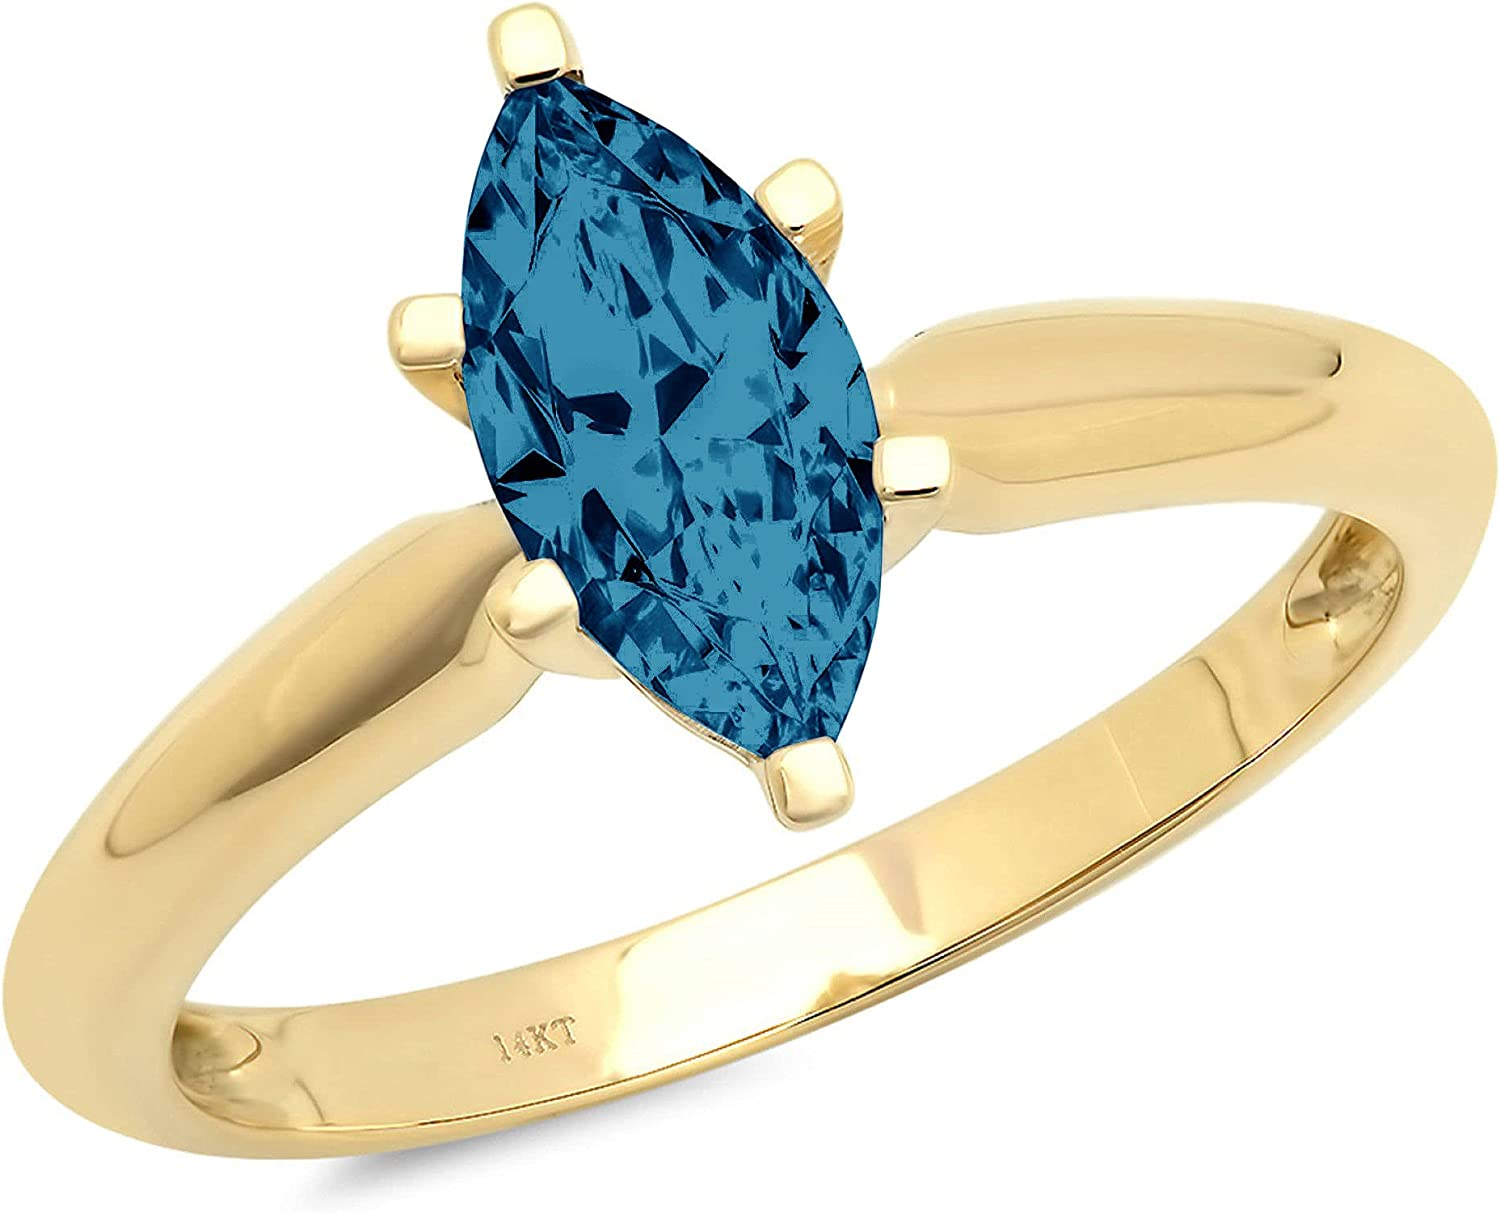 1.4ct Brilliant Marquise Cut Solitaire Natural Royal Blue Ideal VVS1 6-Prong Engagement Wedding Bridal Promise Anniversary Ring Solid 14k Yellow Gold for Women